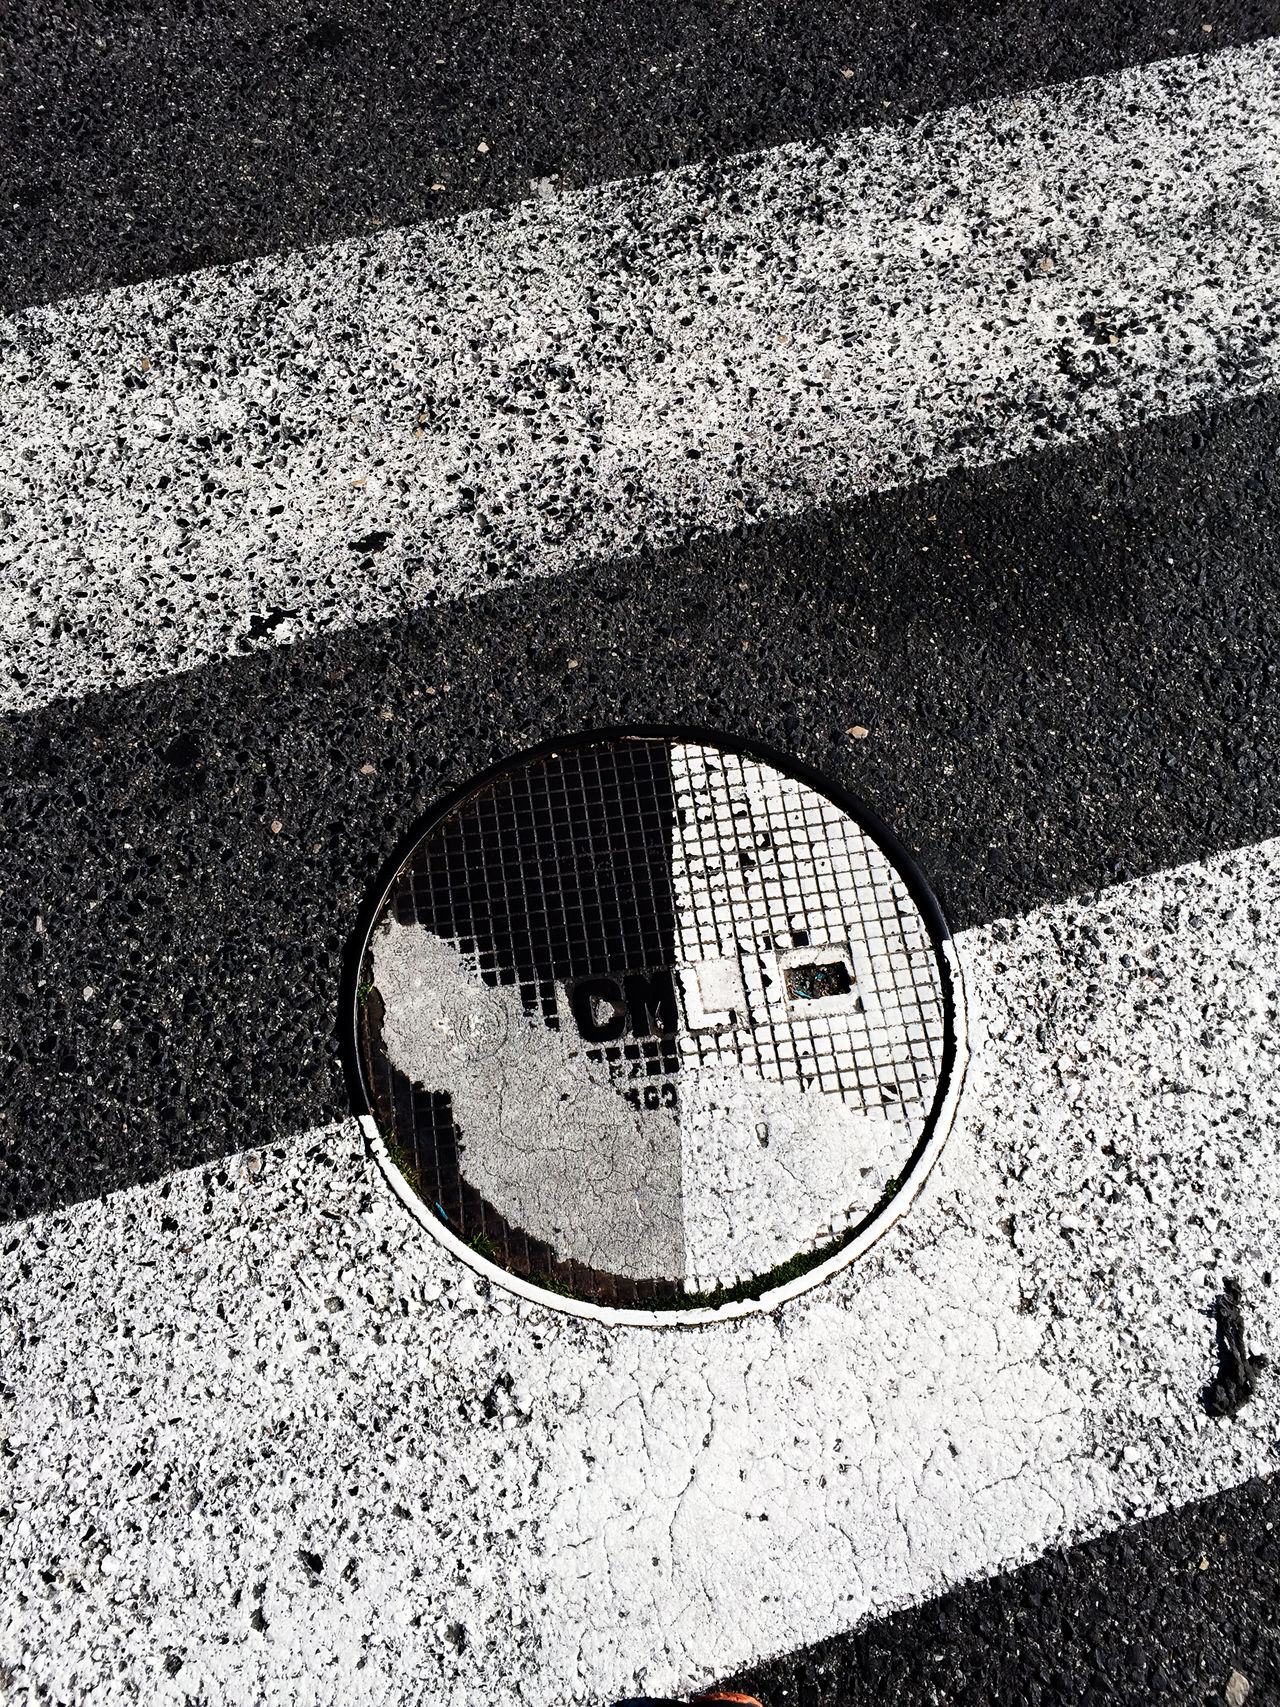 Close-up Crosswalk Day IPhone IPhone Photography IPhoneography Iphonephotography No People Outdoors Pacman Sewercover